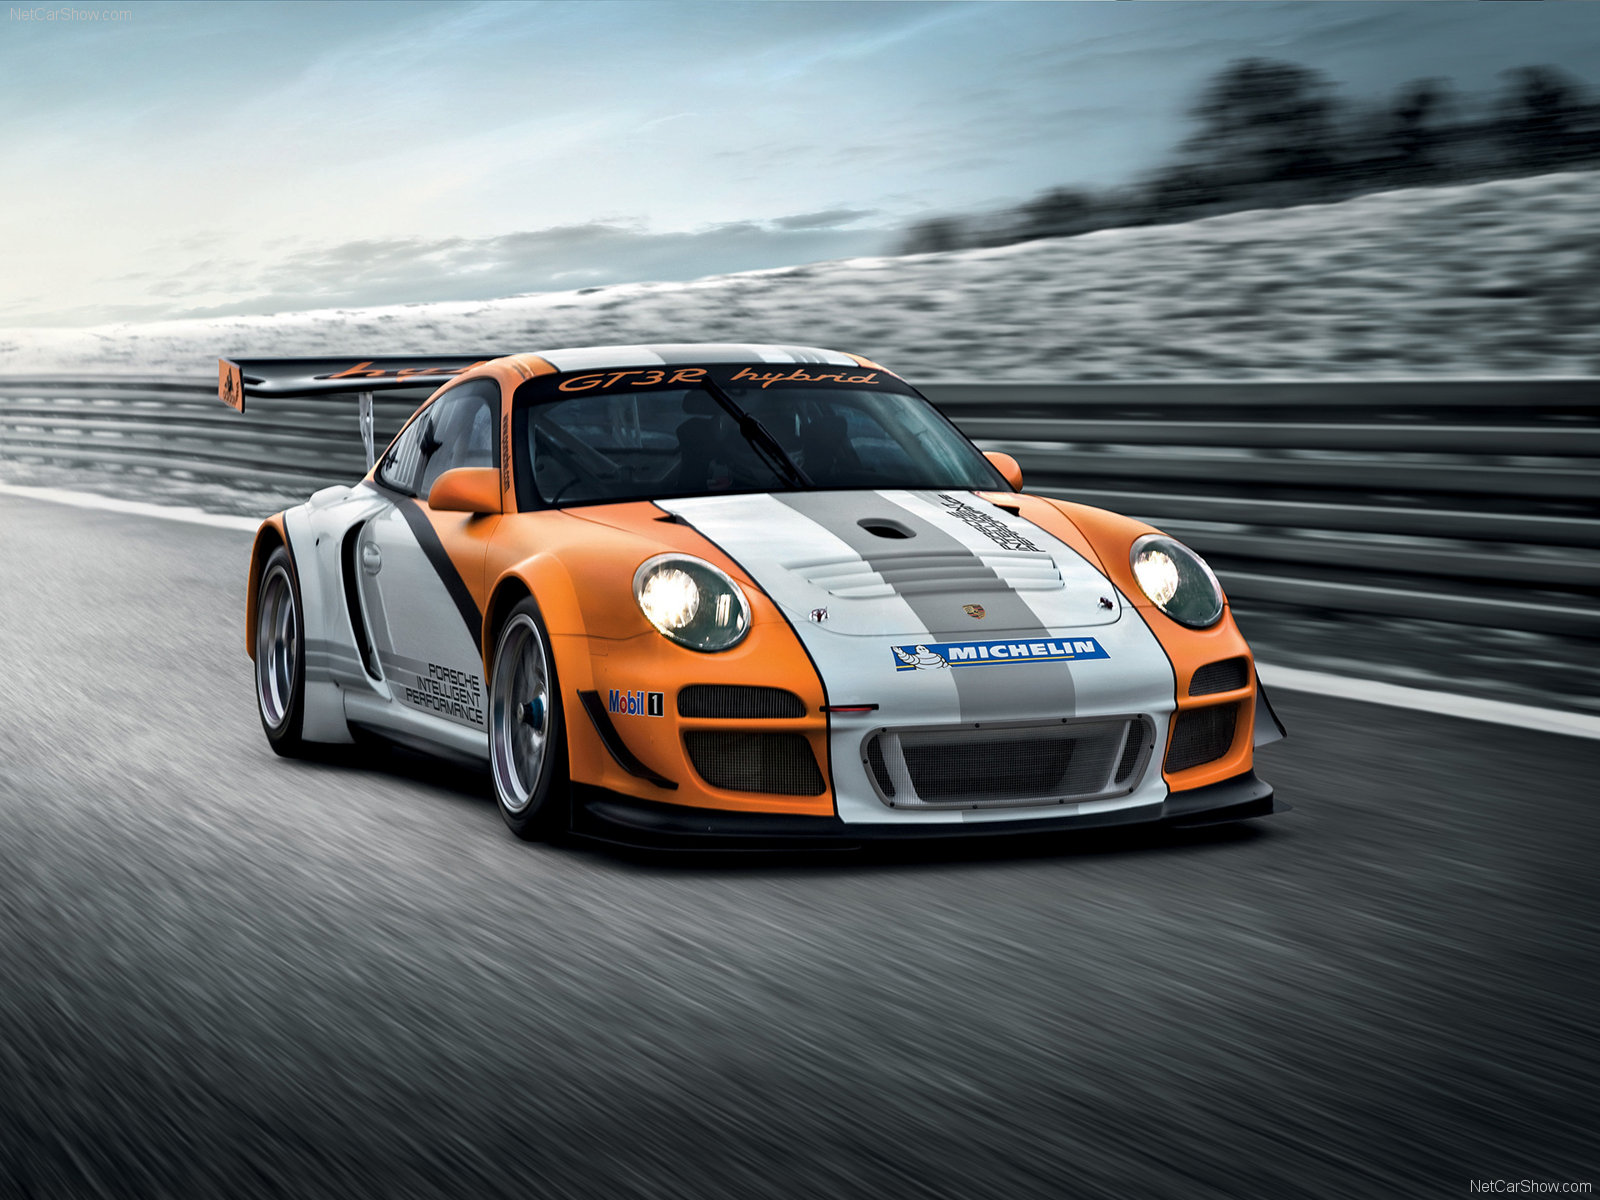 PORSCHE 911 GT3 R HYBRID WALLPAPER Car Wallpaper 4U 1600x1200